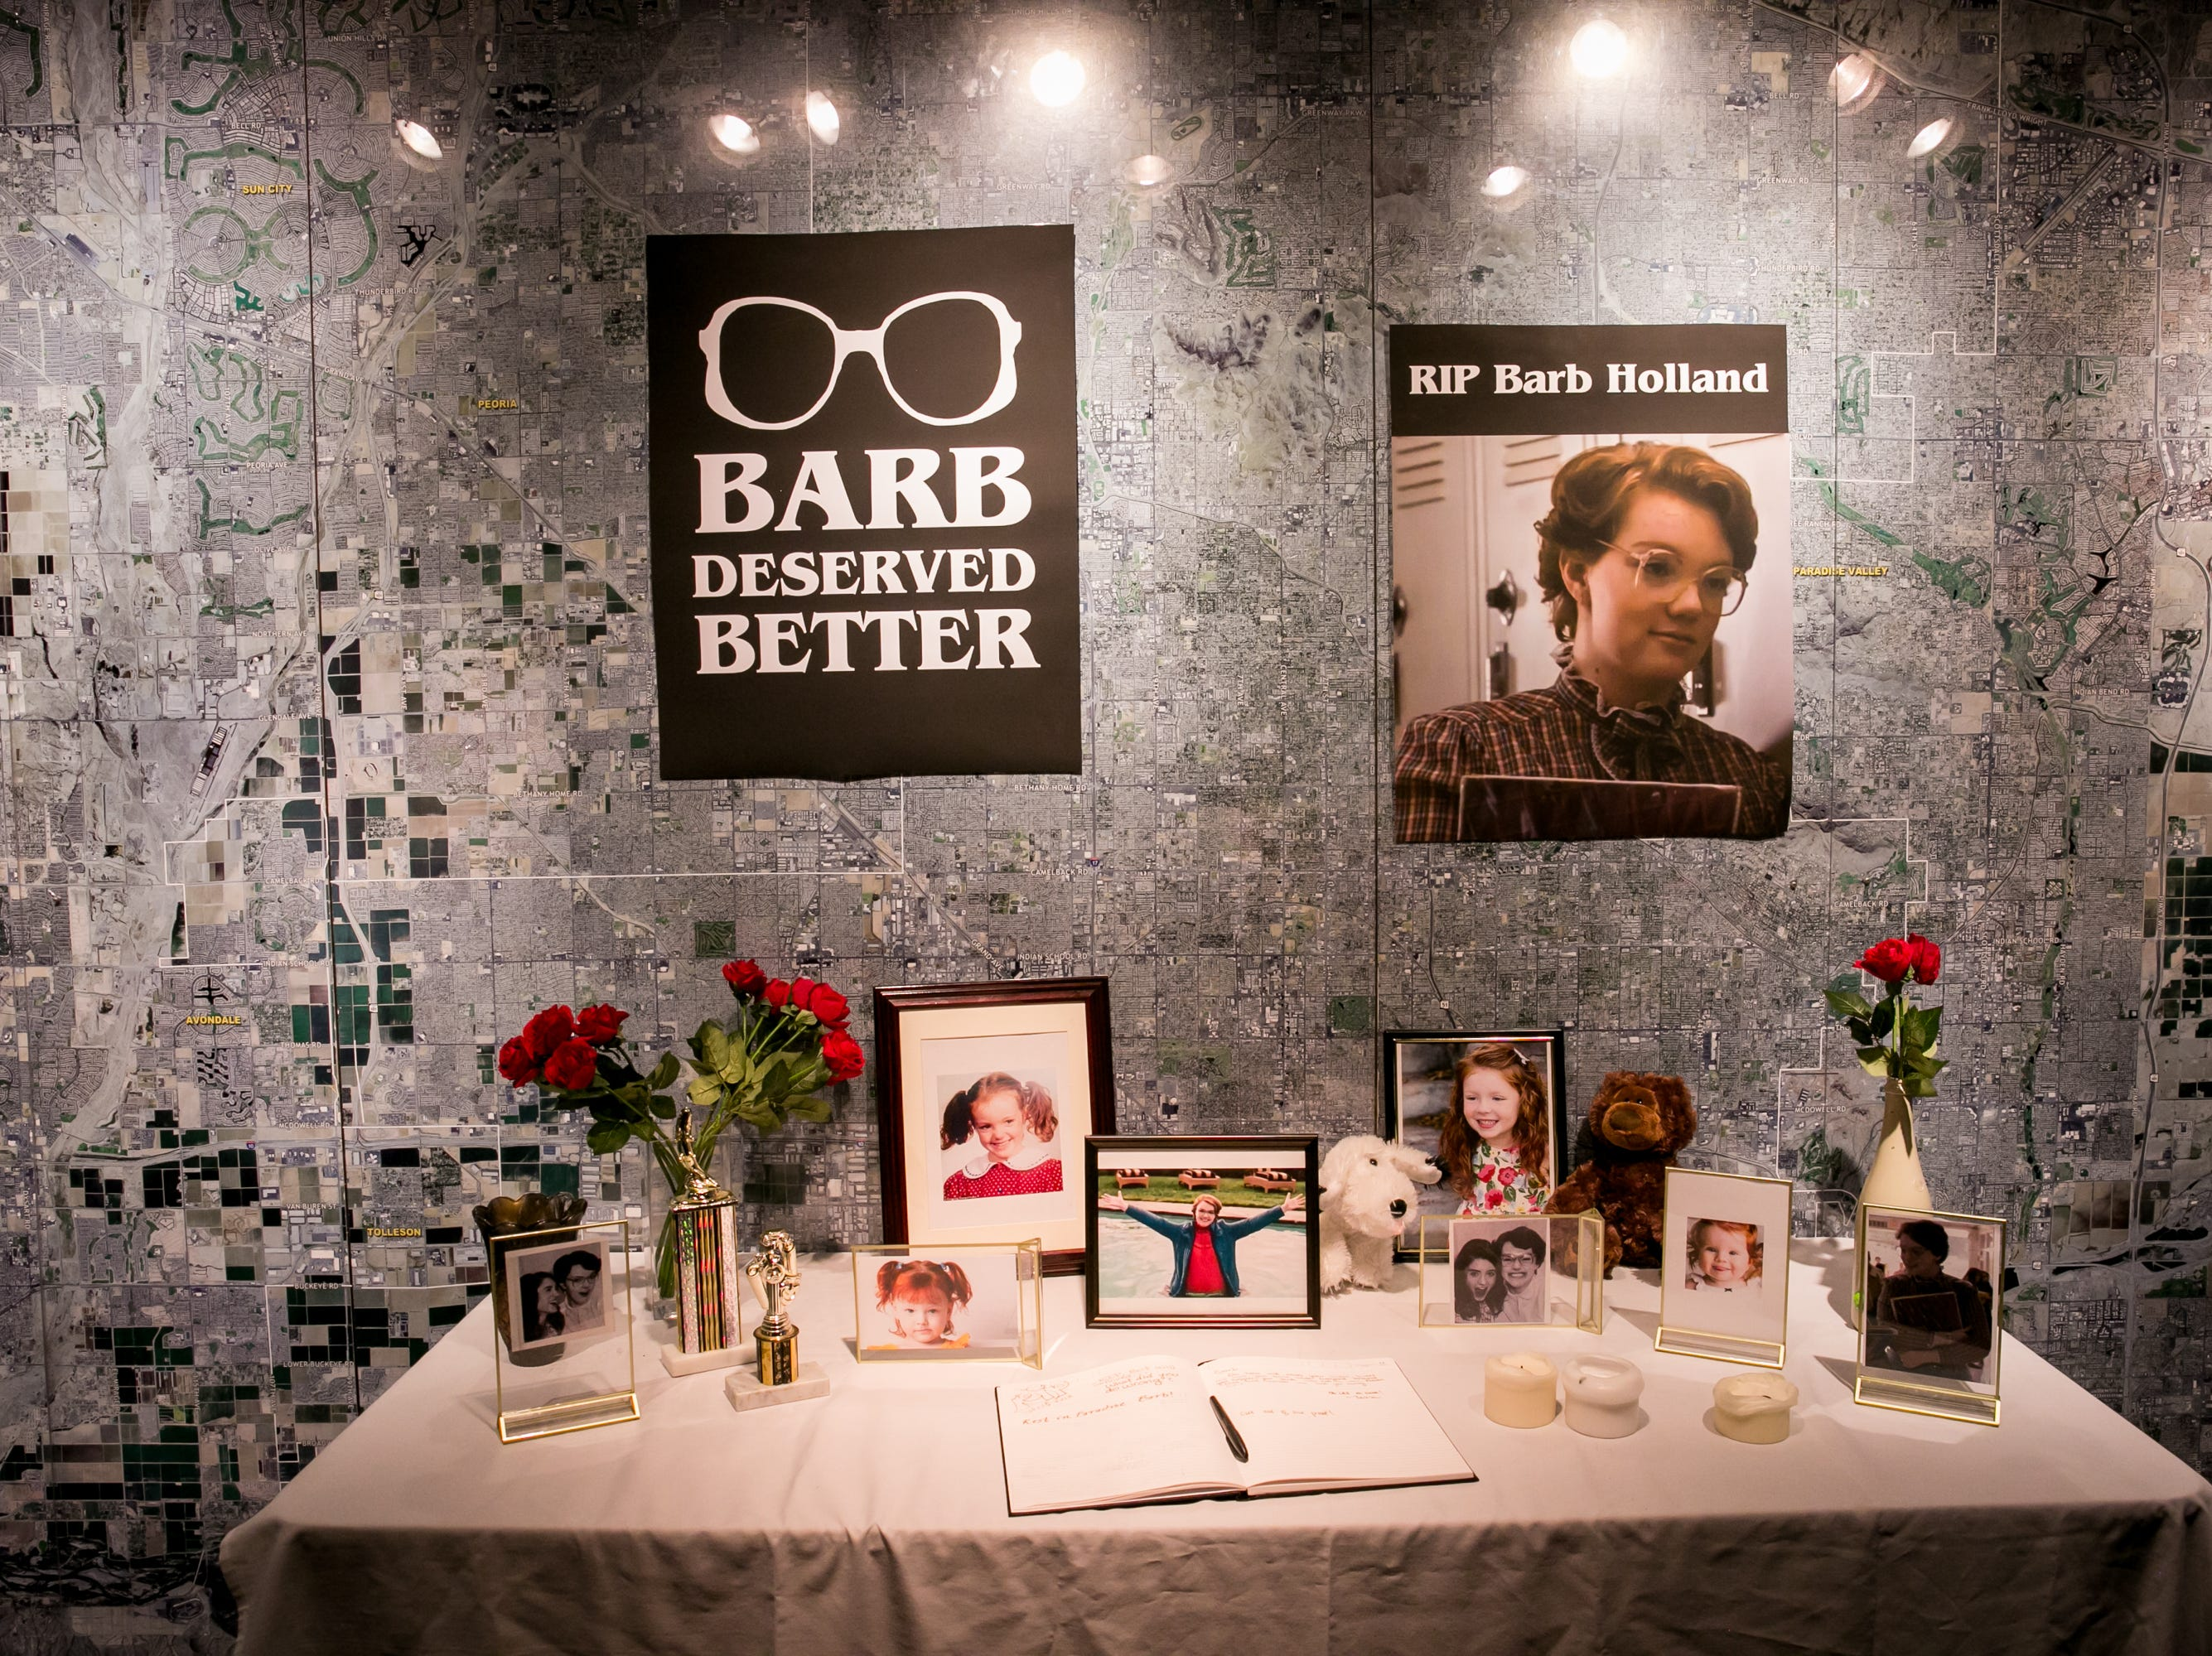 Barb was given a tasteful memorial during Science With A Twist: Stranger Things at the Arizona Science Center on Friday, October 19, 2018.